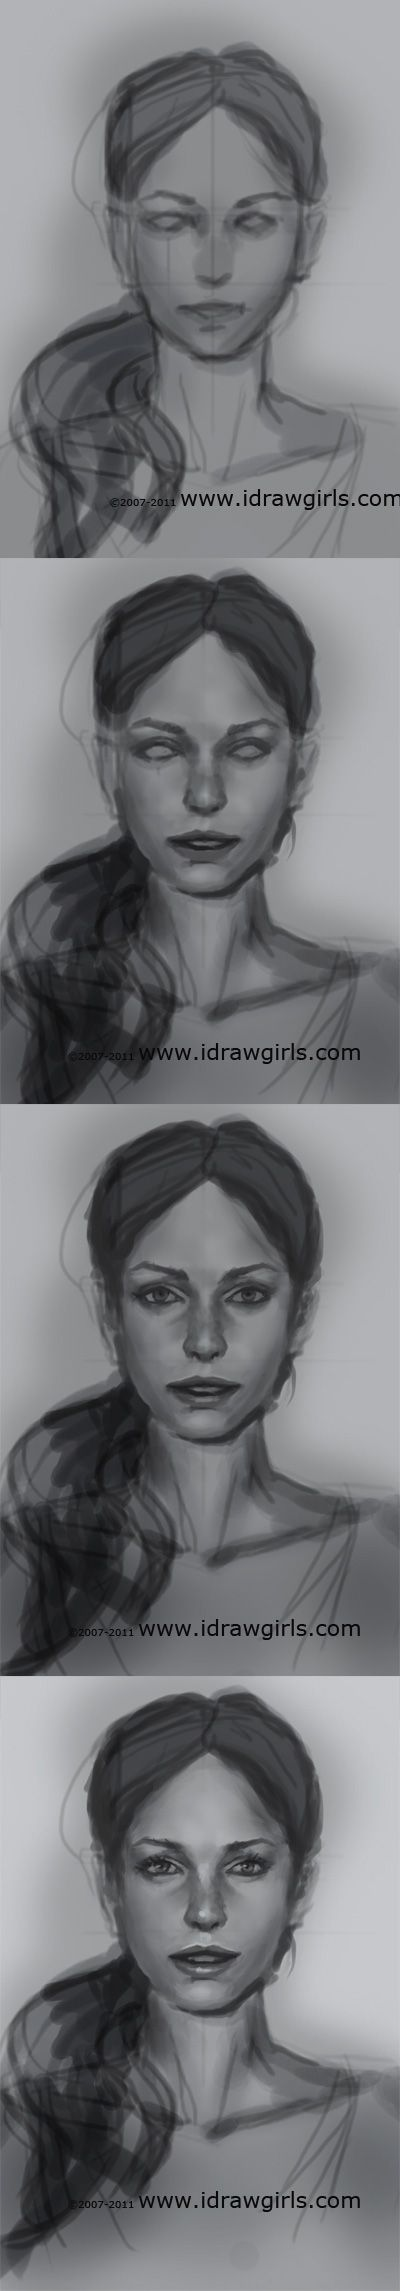 Drawn portrait front view View drawing face Anatomy (2):